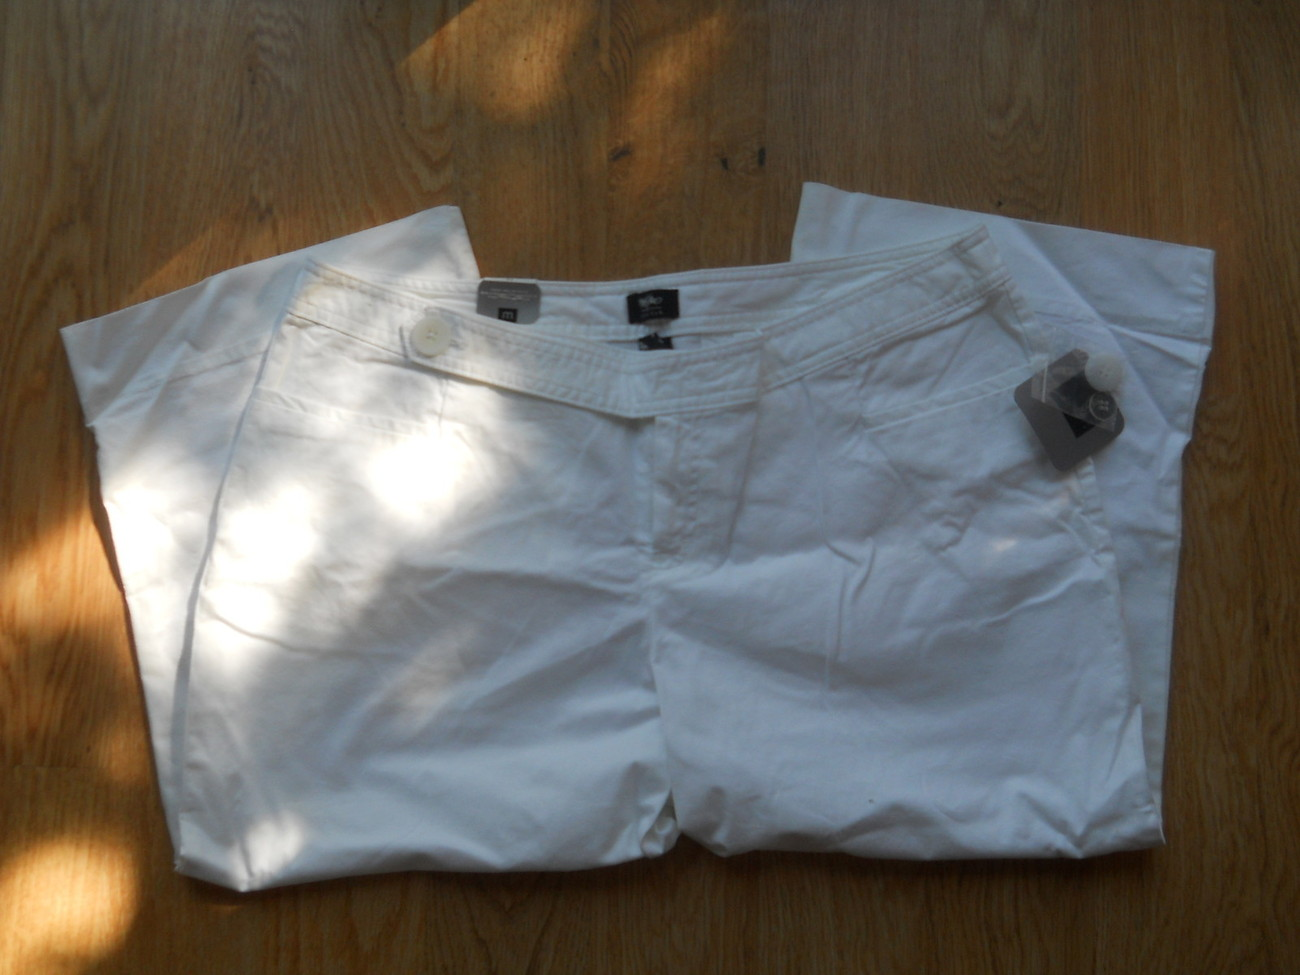 Mossino Stretch Cropped White Pants Low Rise Slim Hip Thigh Capri Size 12 NEW